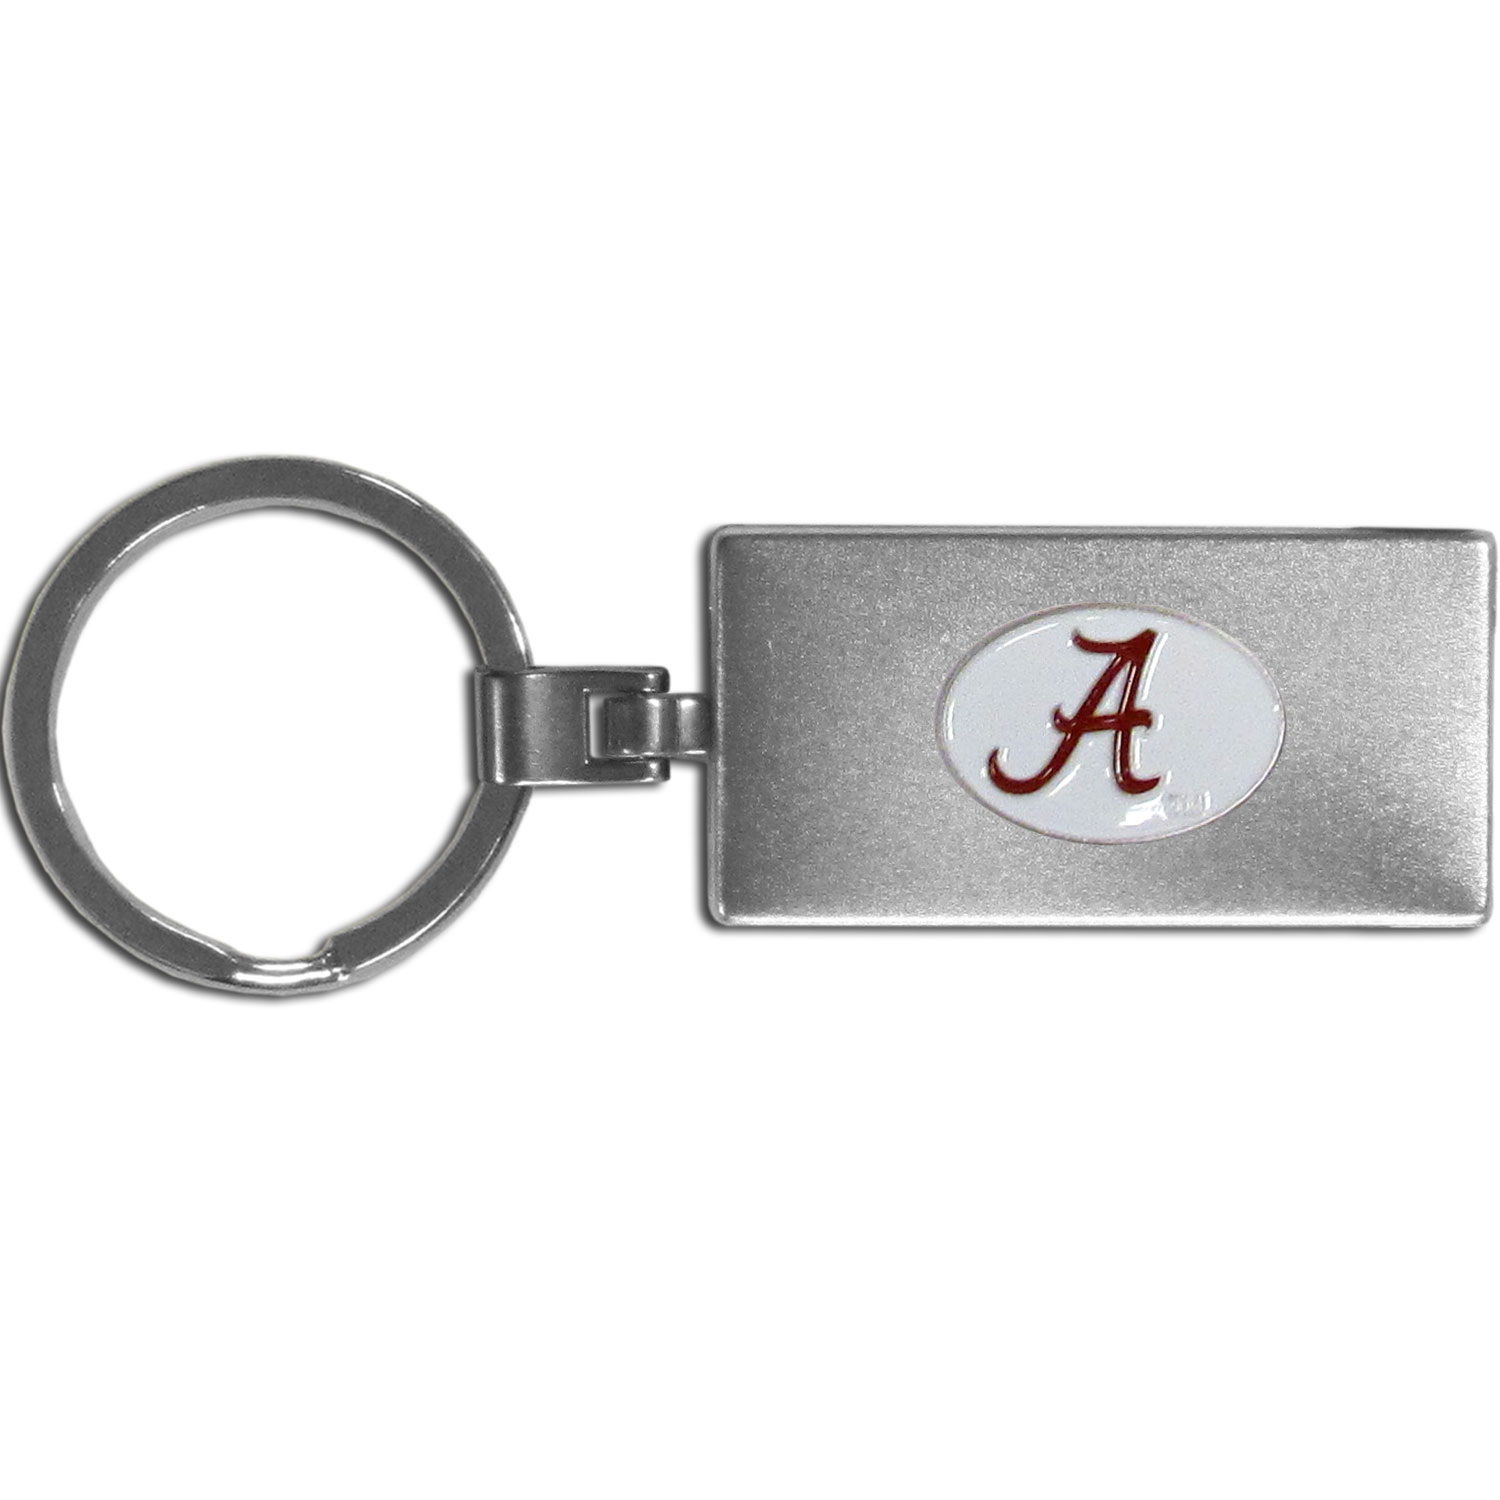 Alabama Crimson Tide Multi-tool Key Chain - Be the hero at the tailgate, camping, or on a Friday night with your Alabama Crimson Tide Multi-Tool Keychain which comes complete with bottle opener, scissors, knife, nail file and screw driver. Be it opening a package or a beverage Siskiyou's Multi-Tool Keychain goes wherever your keys do. The keychain hangs at 4 inches long when closed.